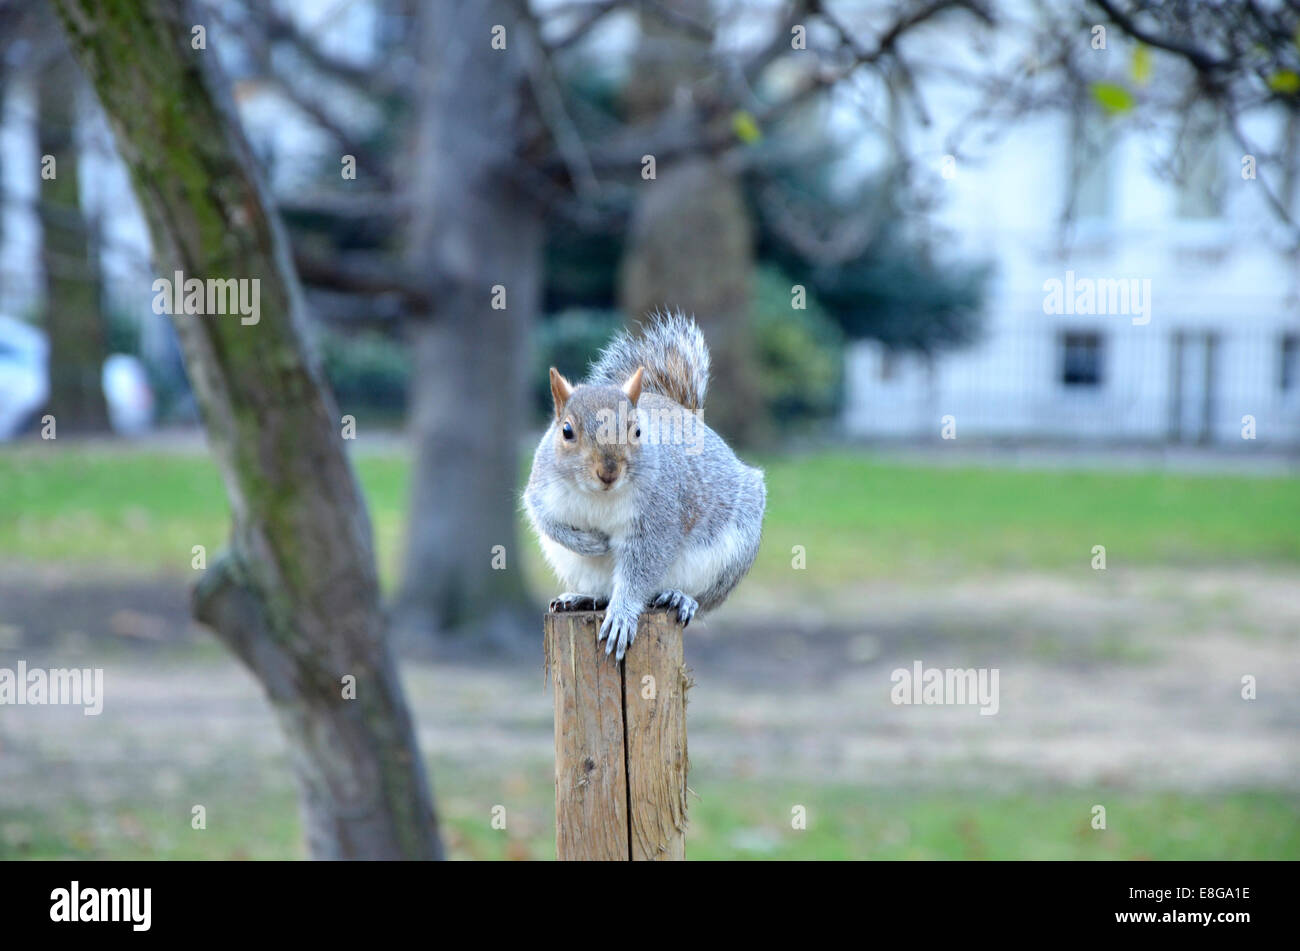 City Squirrel Stock Photos & City Squirrel Stock Images - Alamy